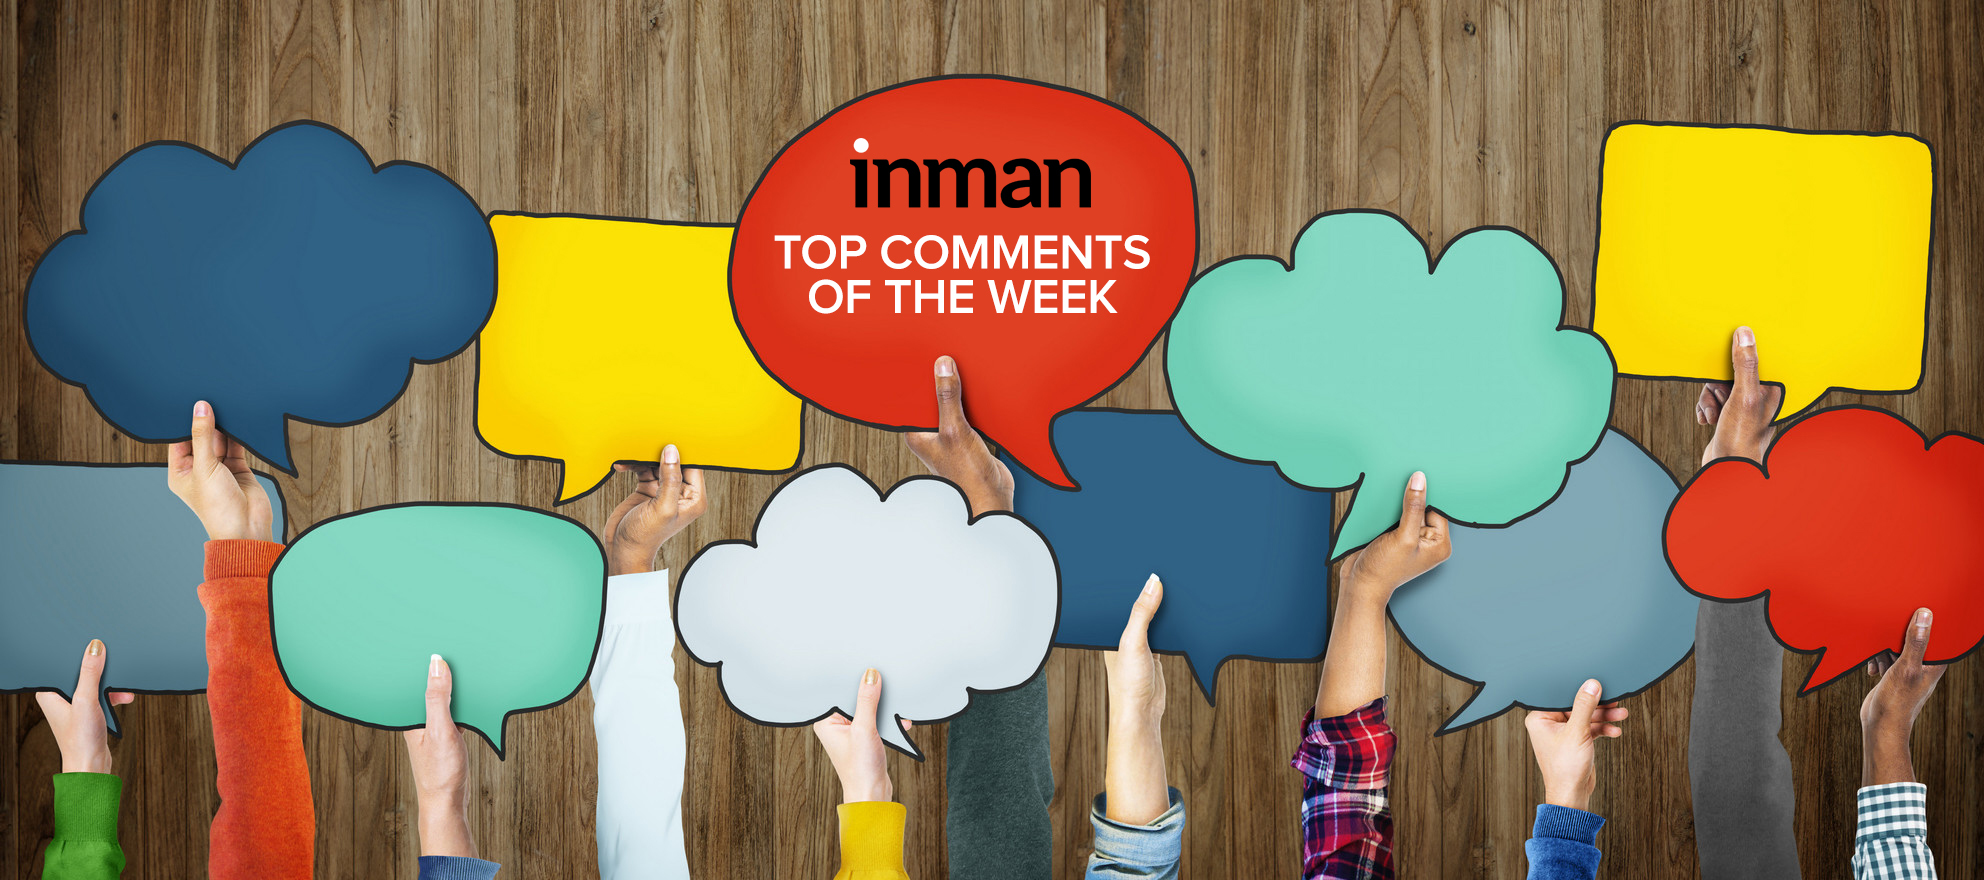 top comments inman news feb 27-march 3